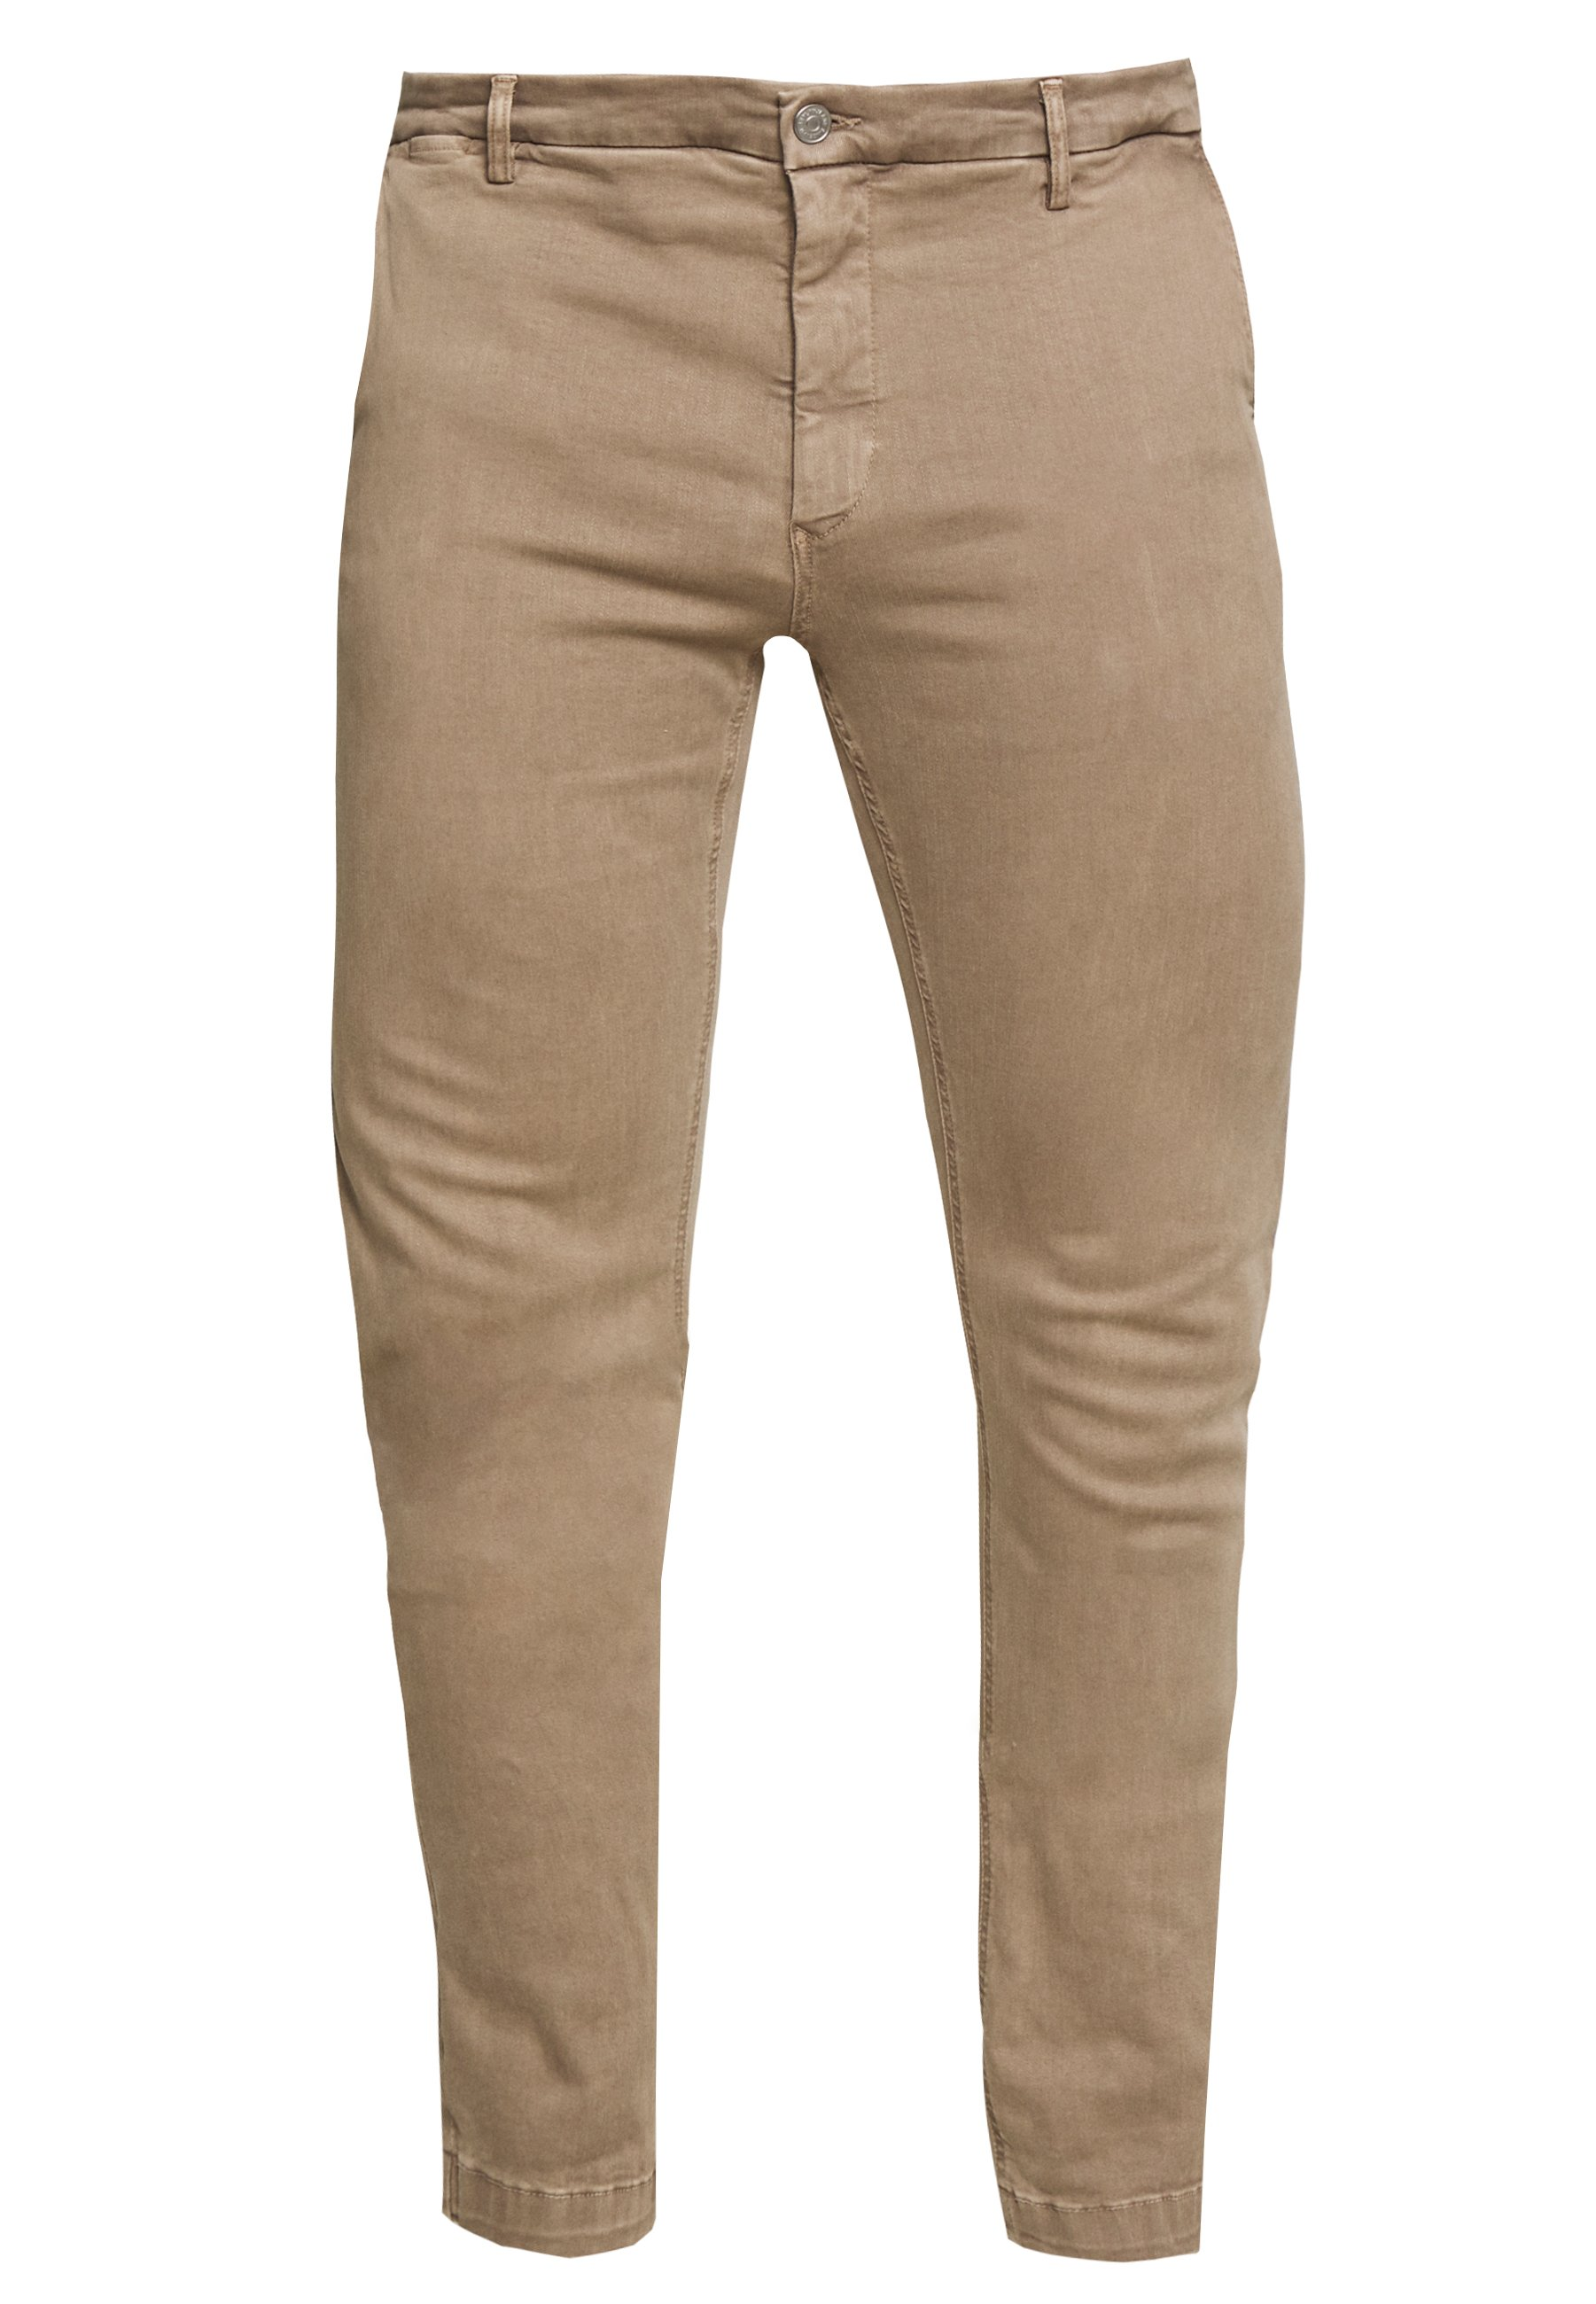 Replay Plus Chino - beige